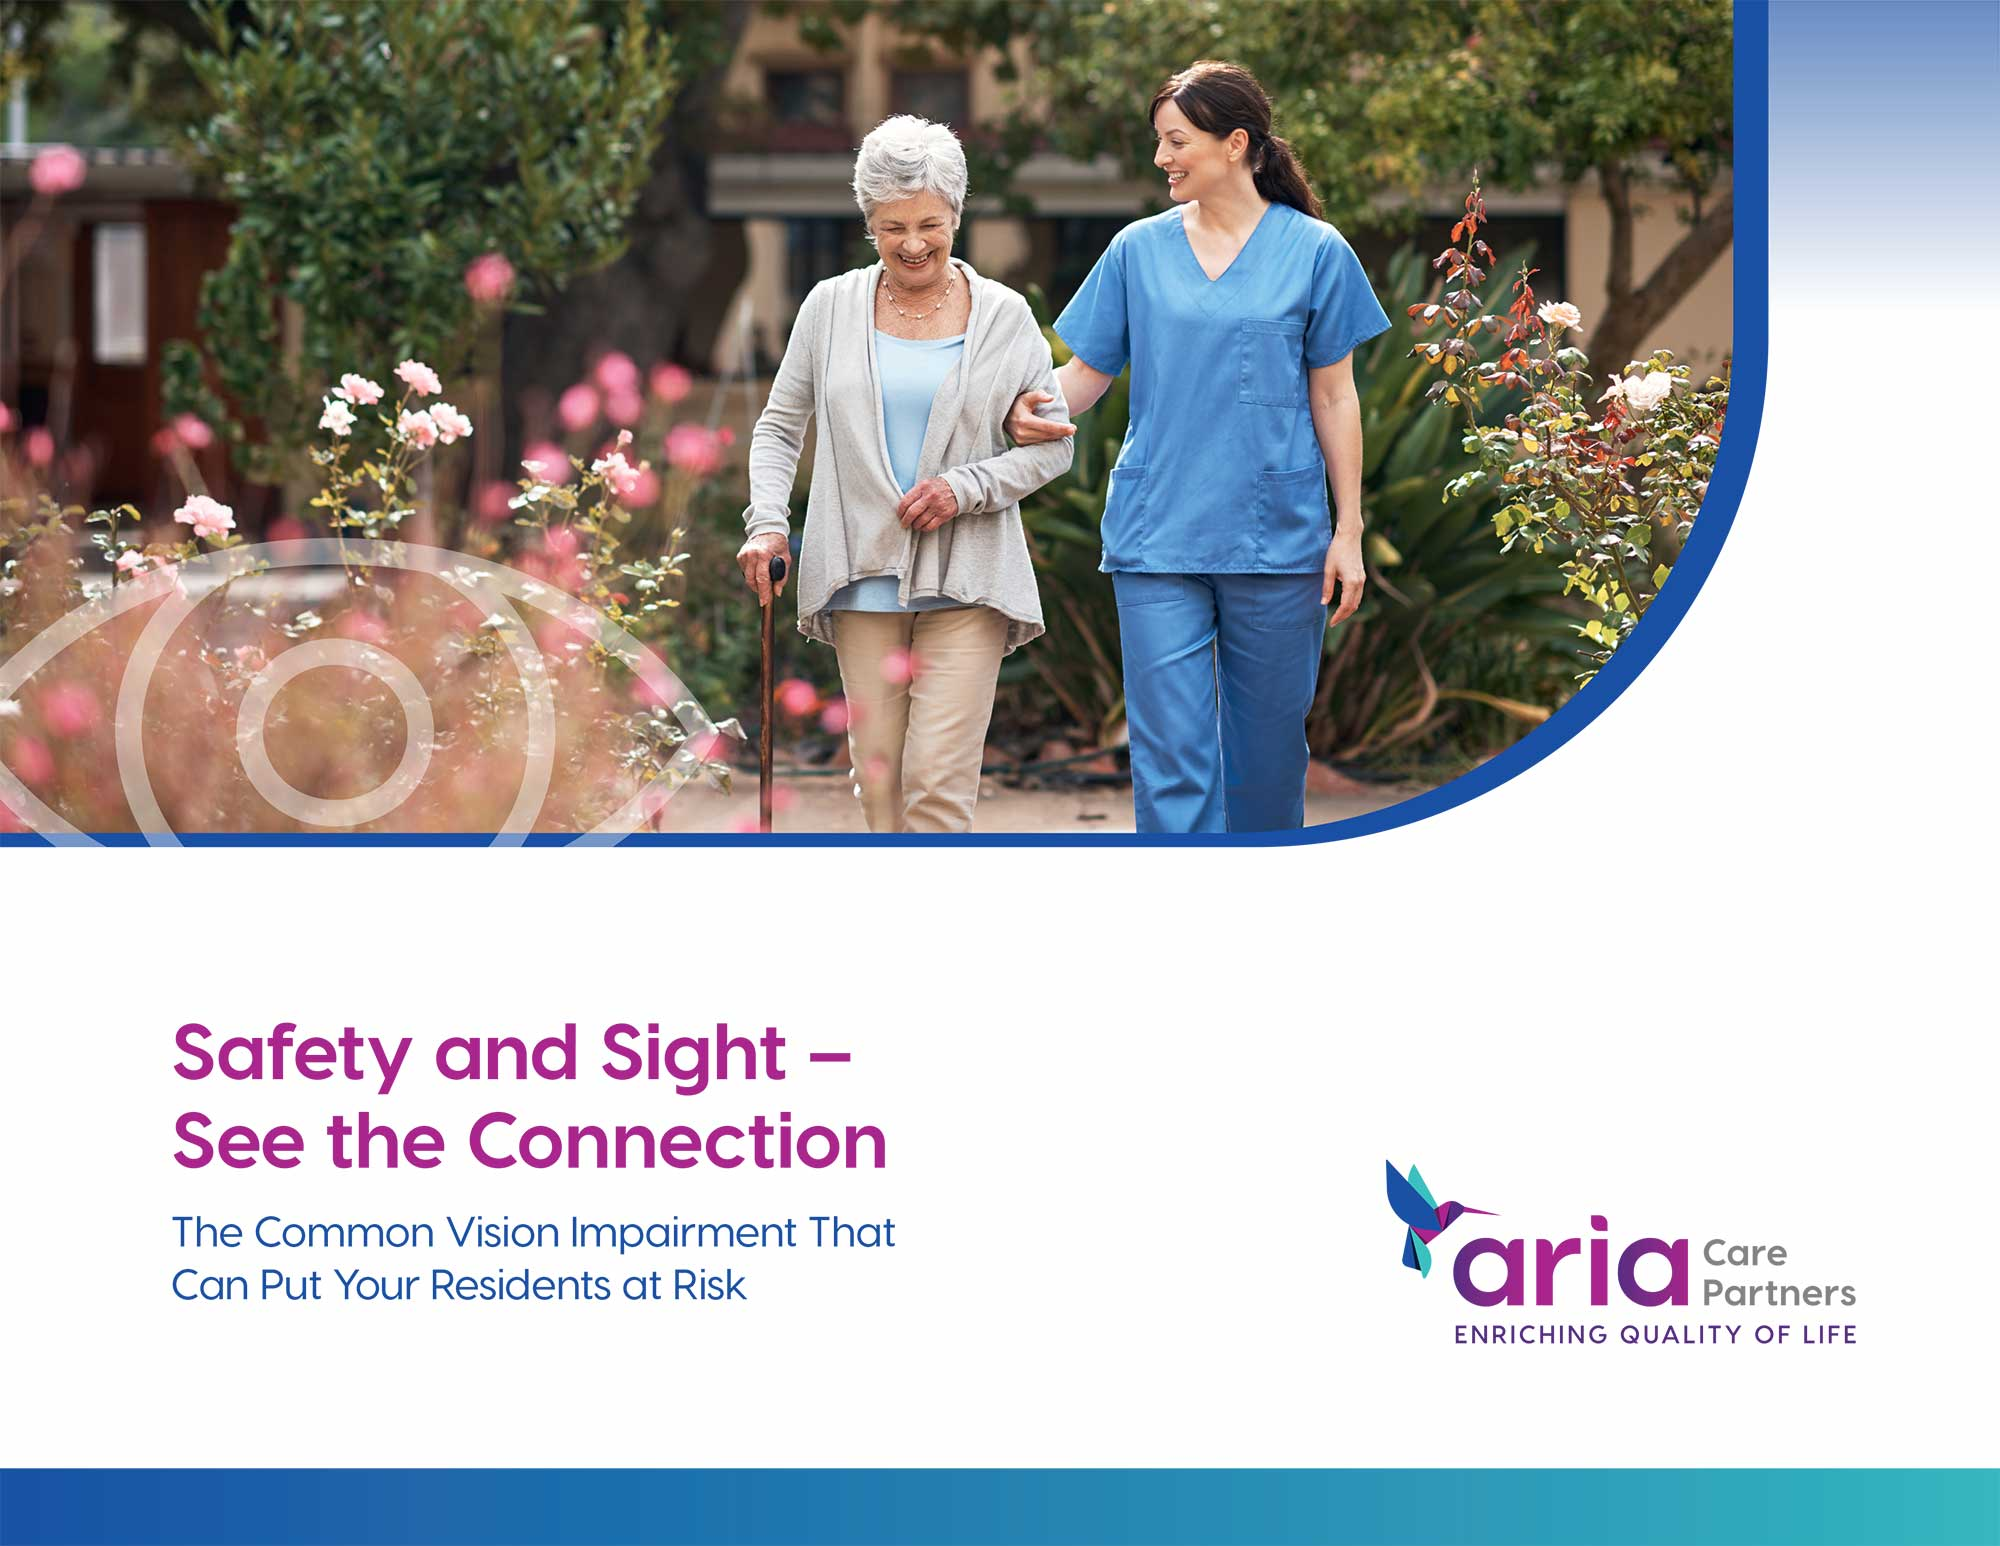 Safety and Sight – See the Connection